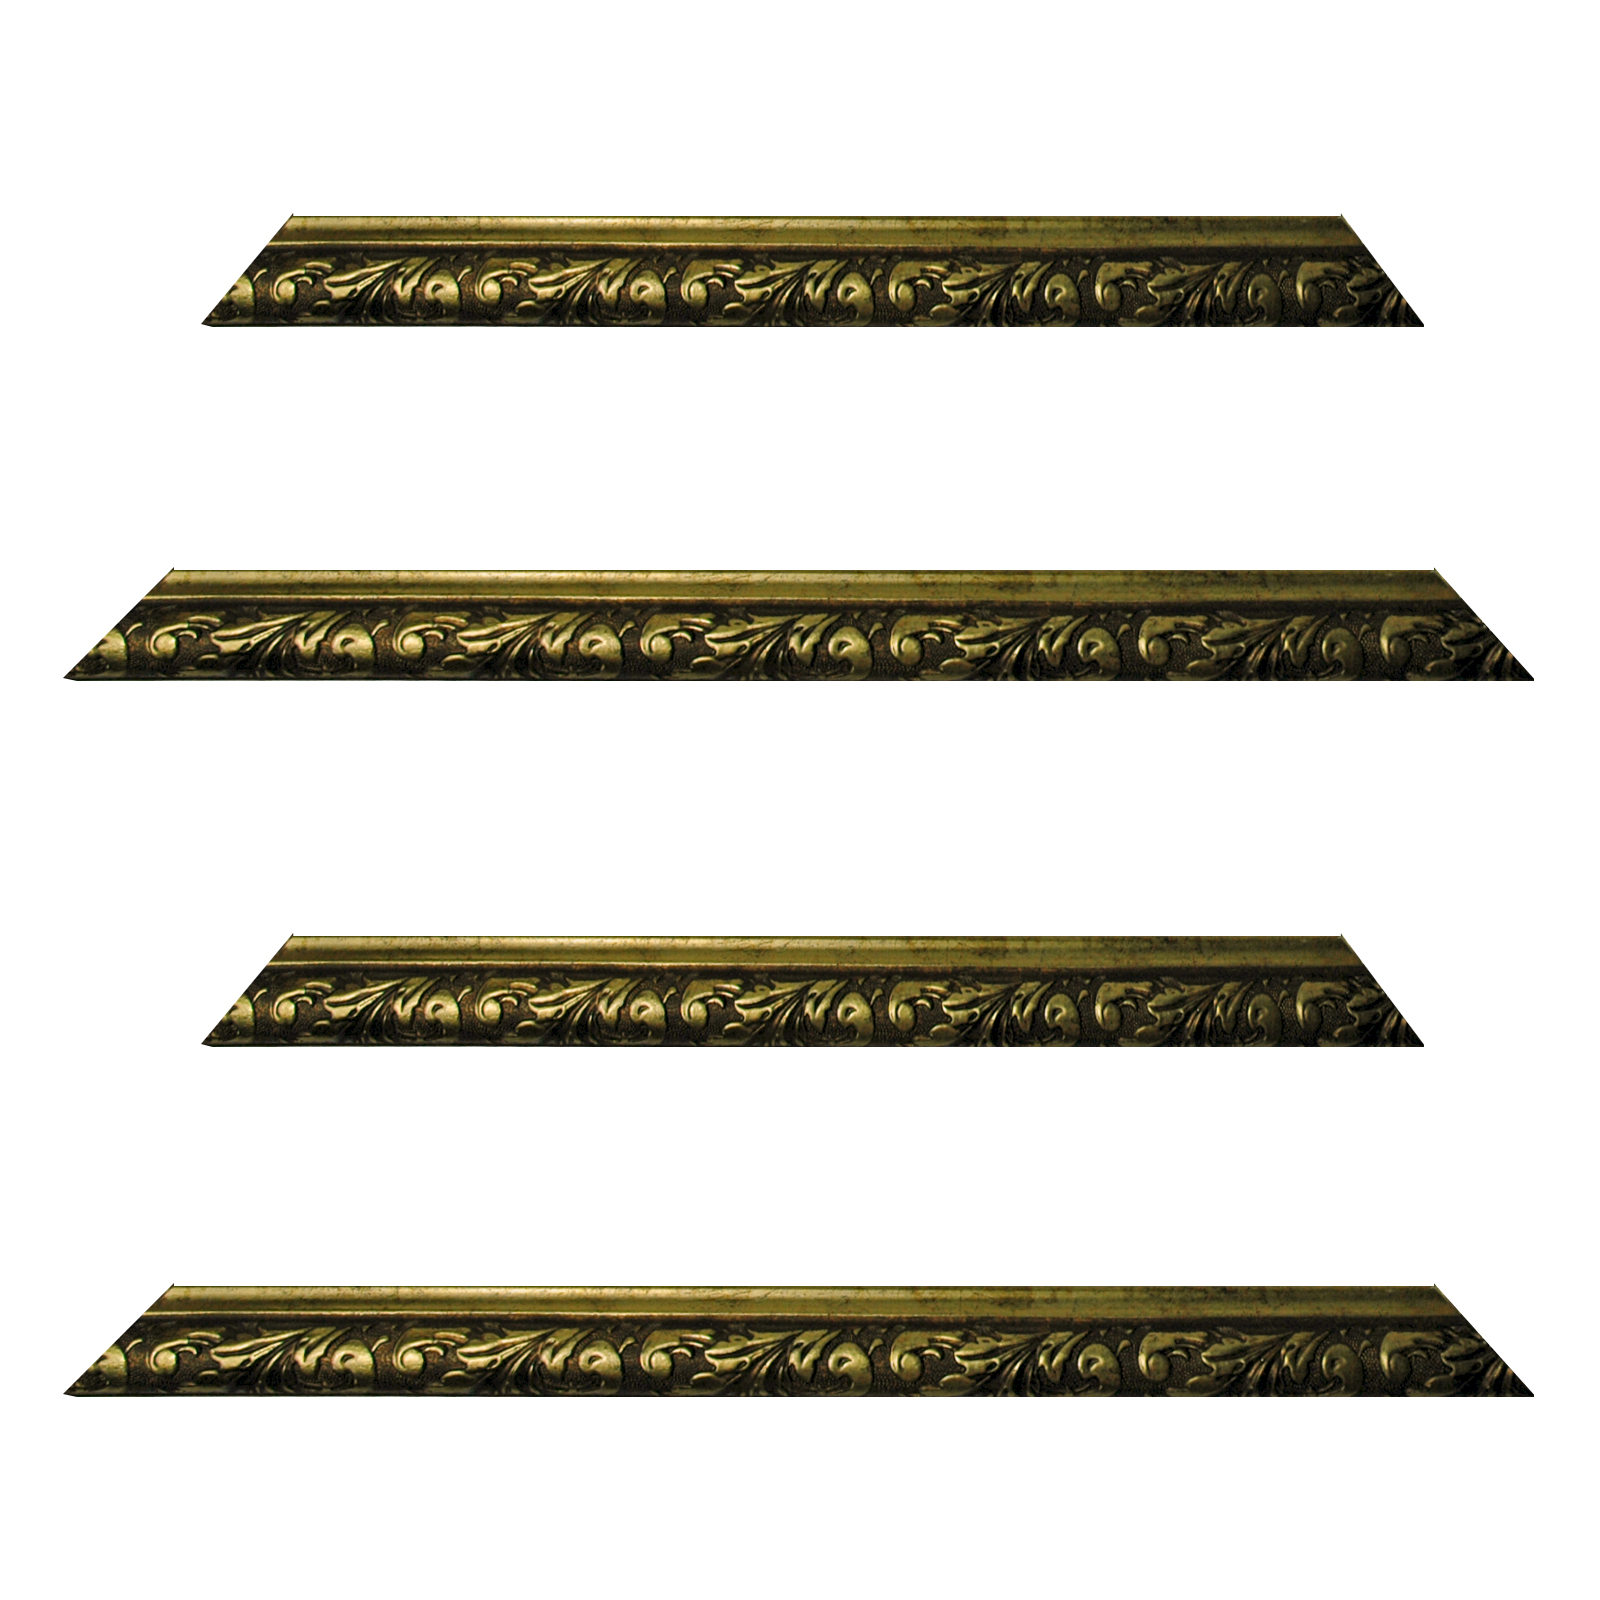 Baroque différentes cadre or fineHommes t décoré, 337 ORO, différentes Baroque variantes 5c9075